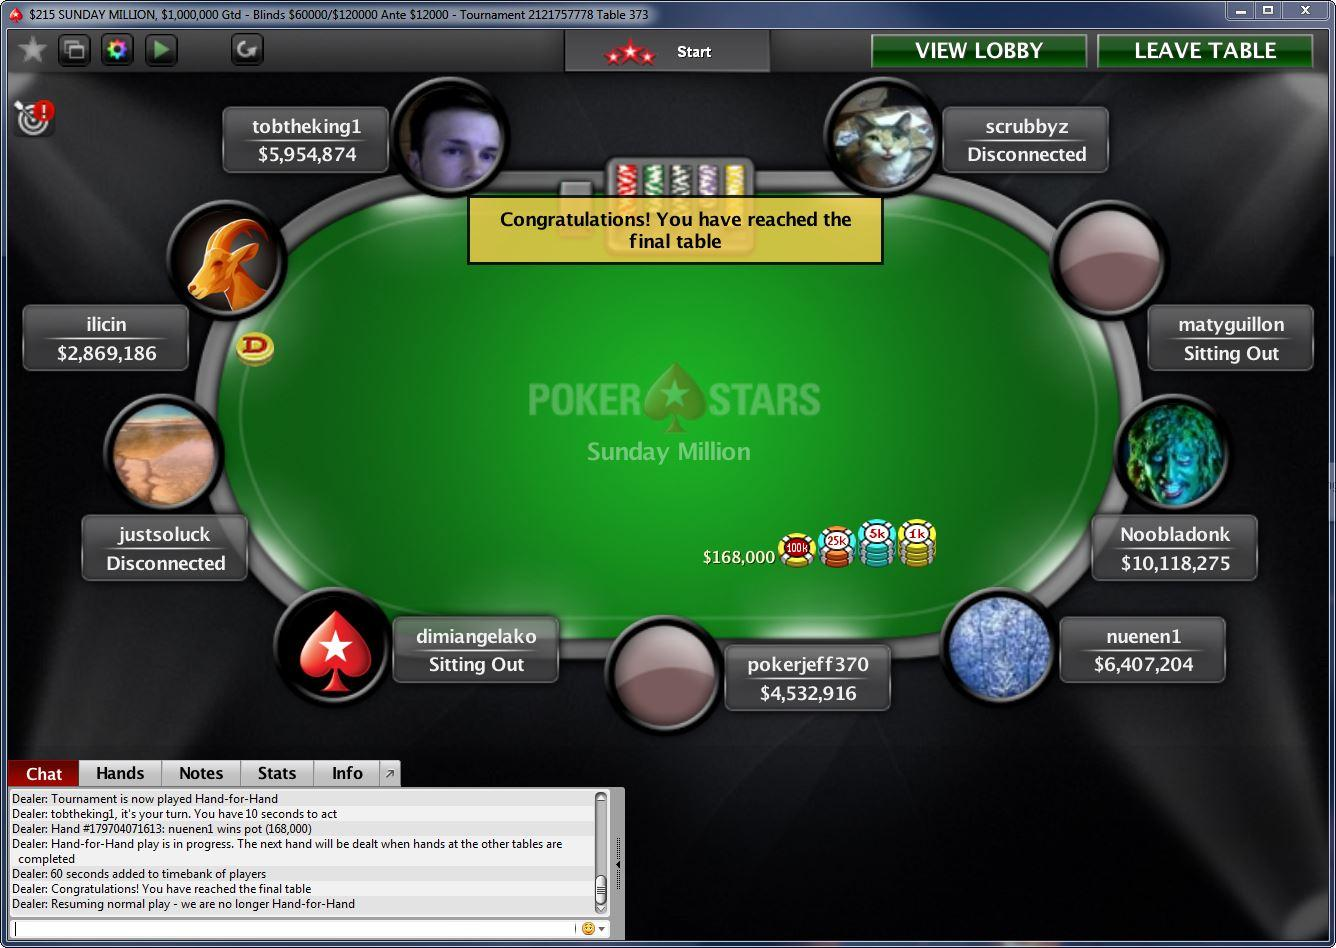 PokerStars Sunday Million